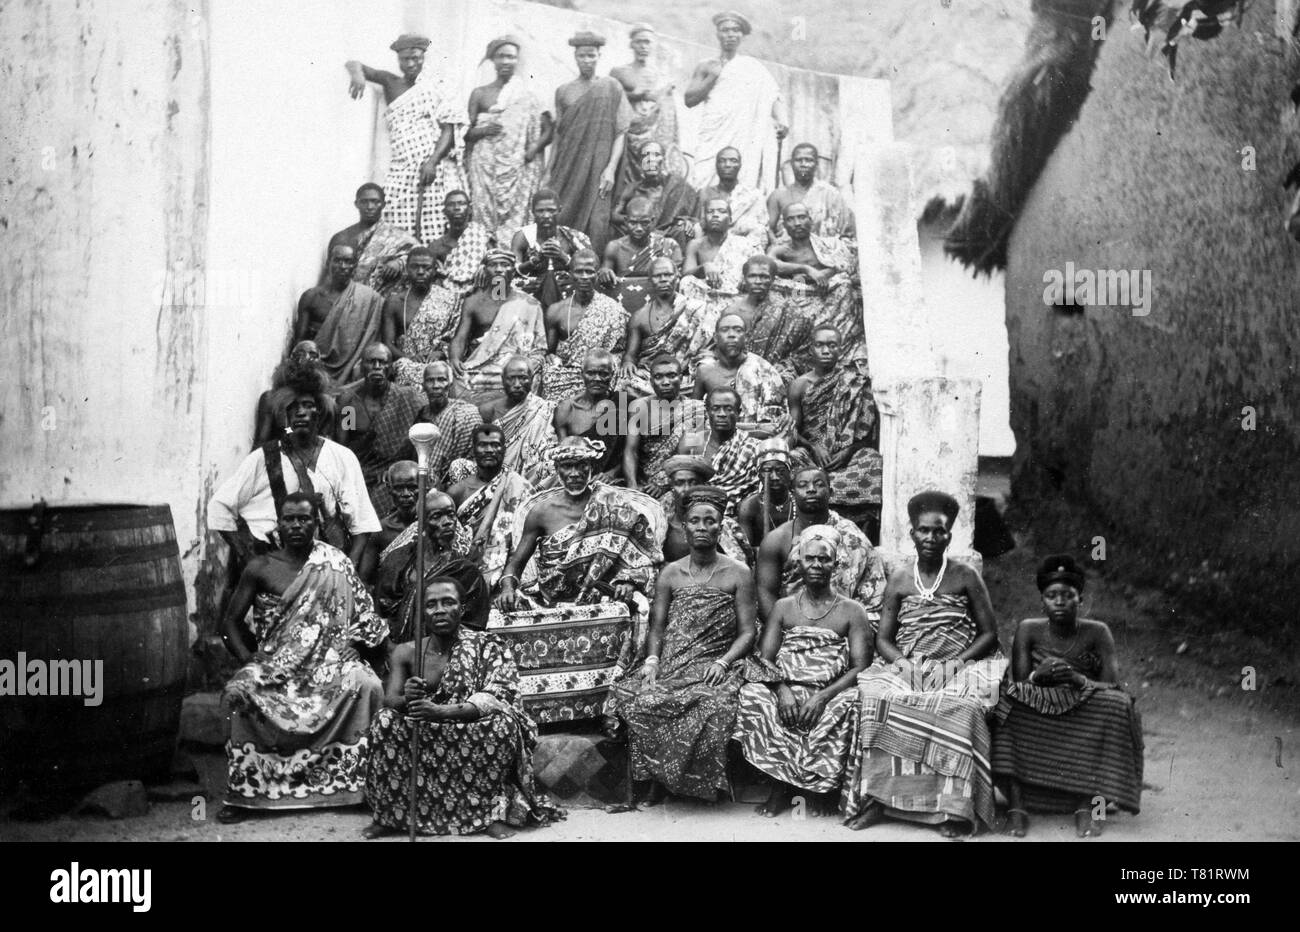 King Kobina of Elmina, Ghana, 1890s - Stock Image